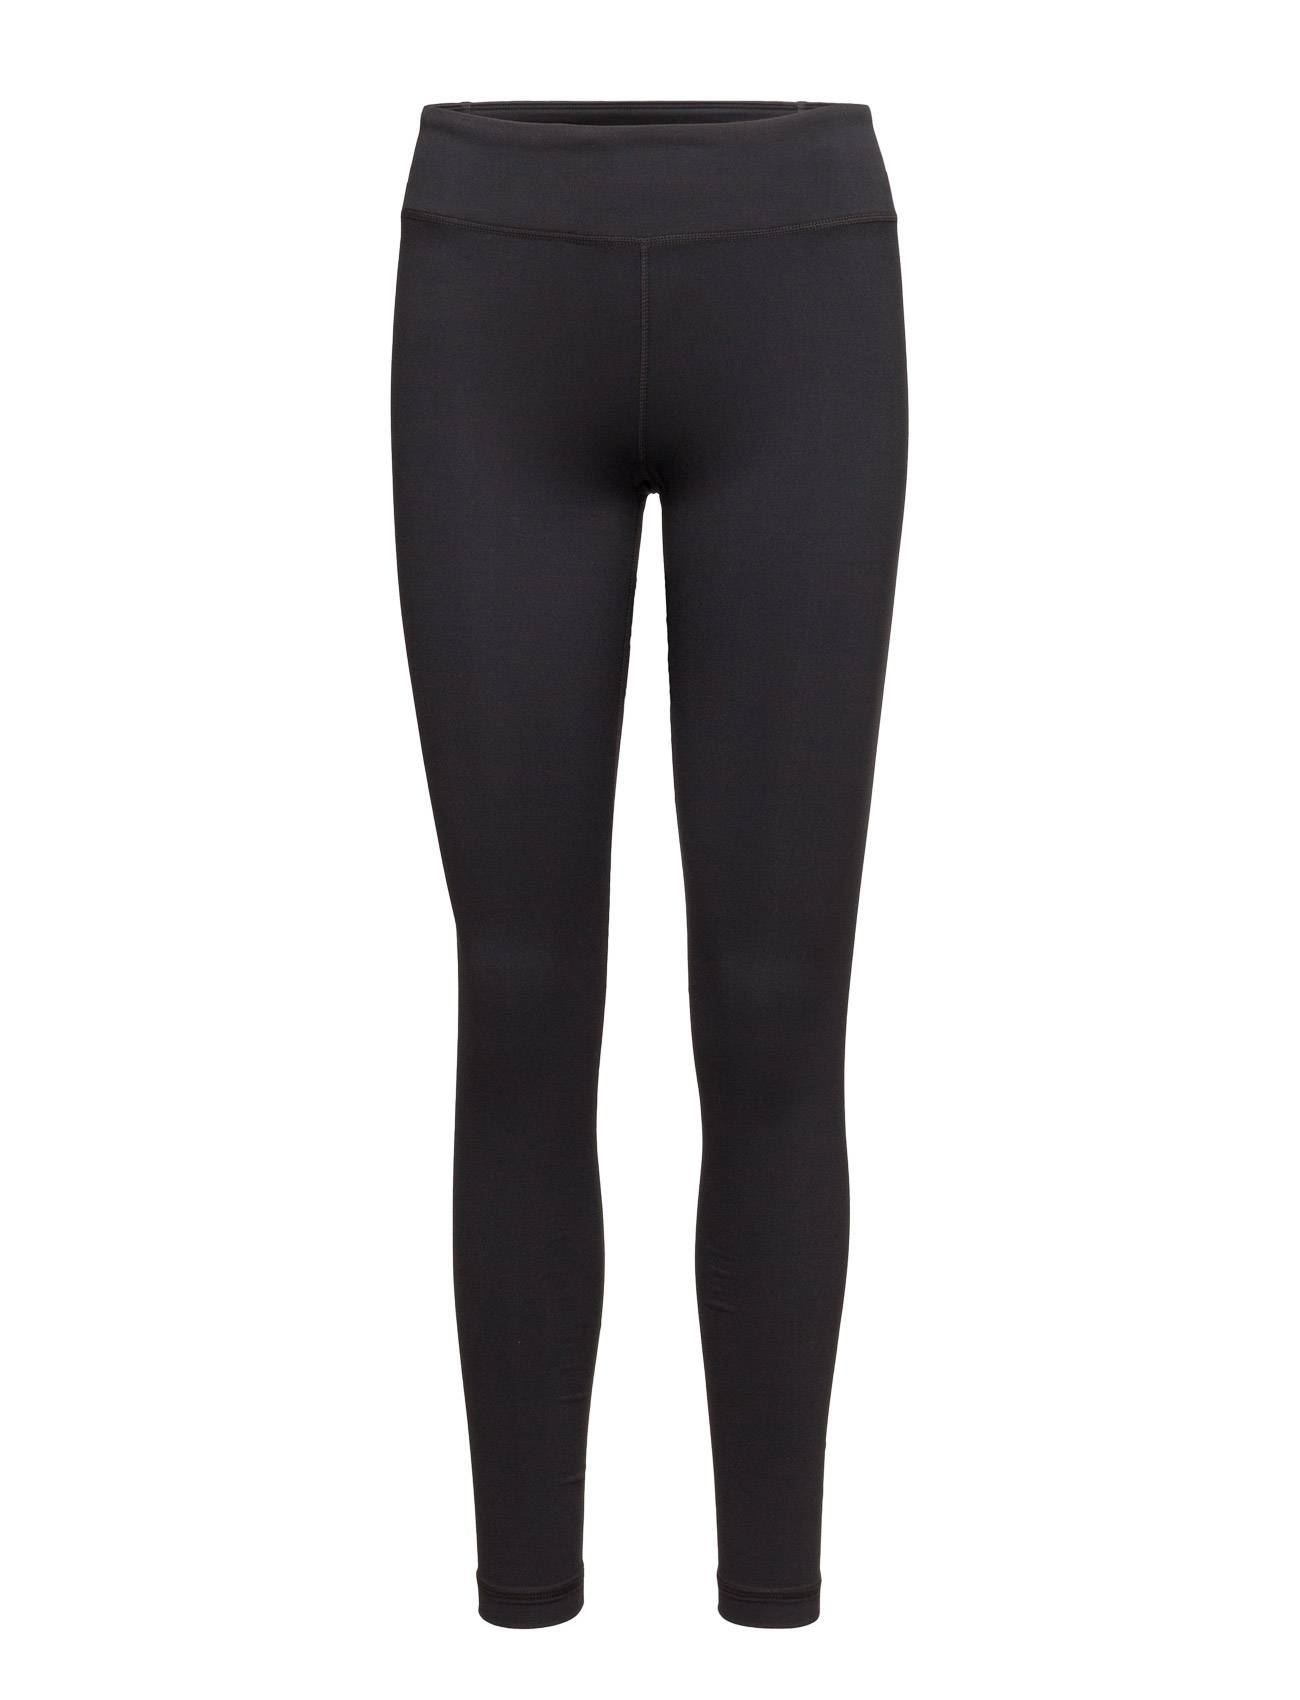 Under Armour Studio Legging